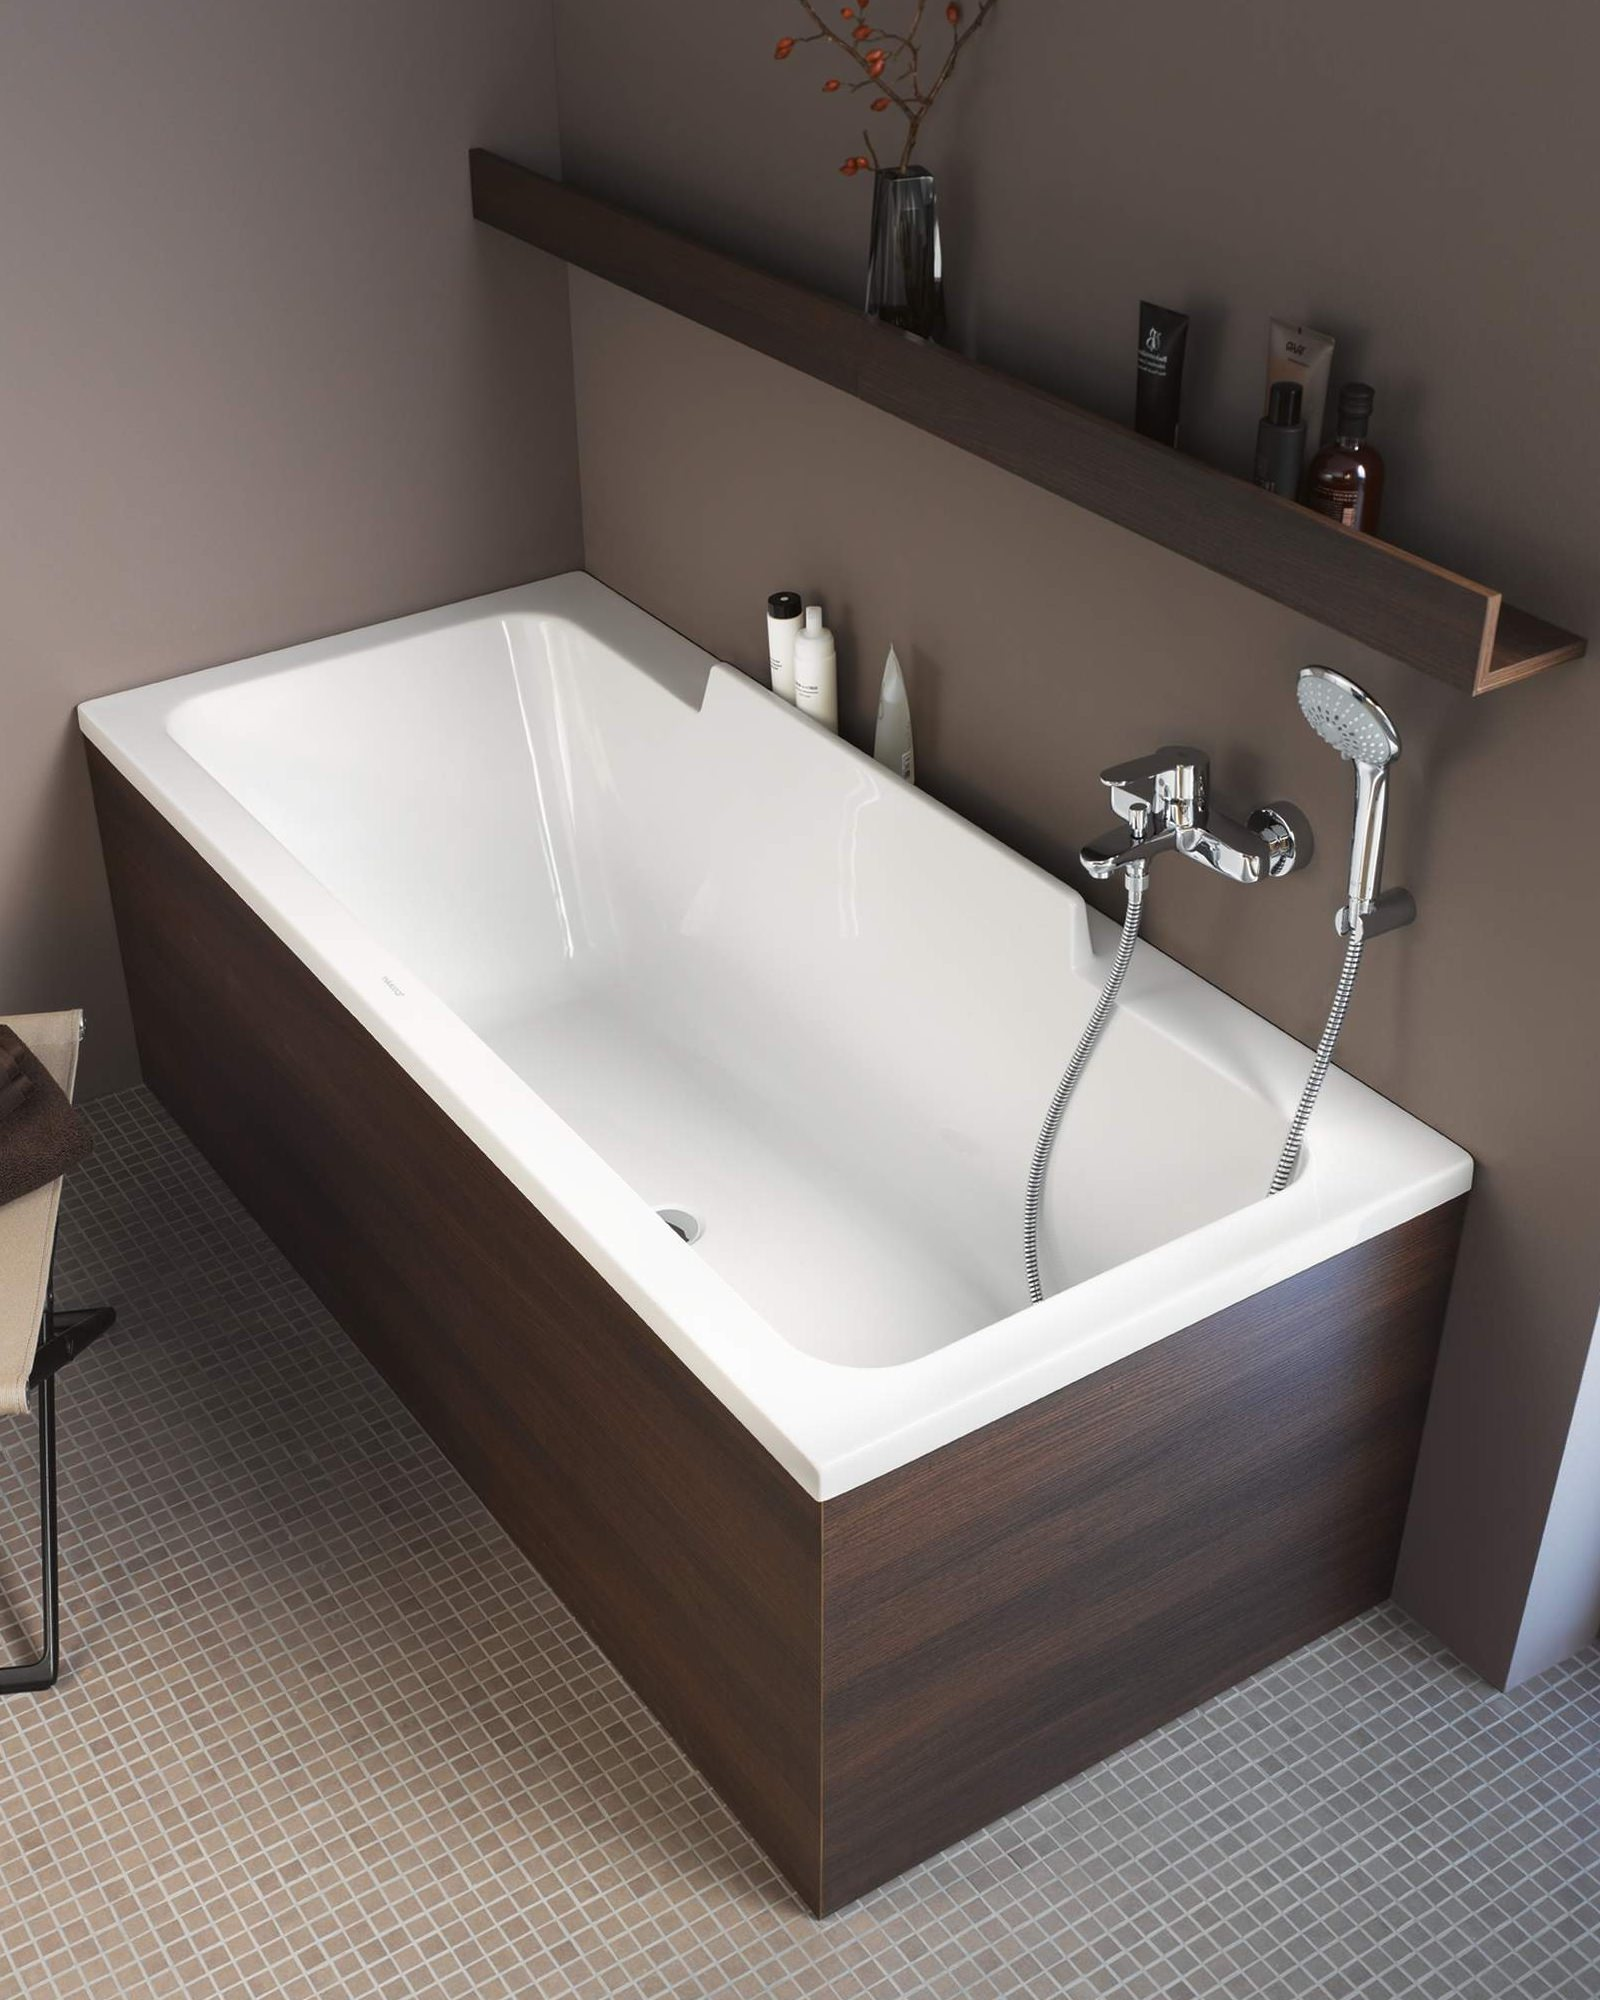 Duravit durastyle 1600 x 700mm bath with left slope and for Bath 1800